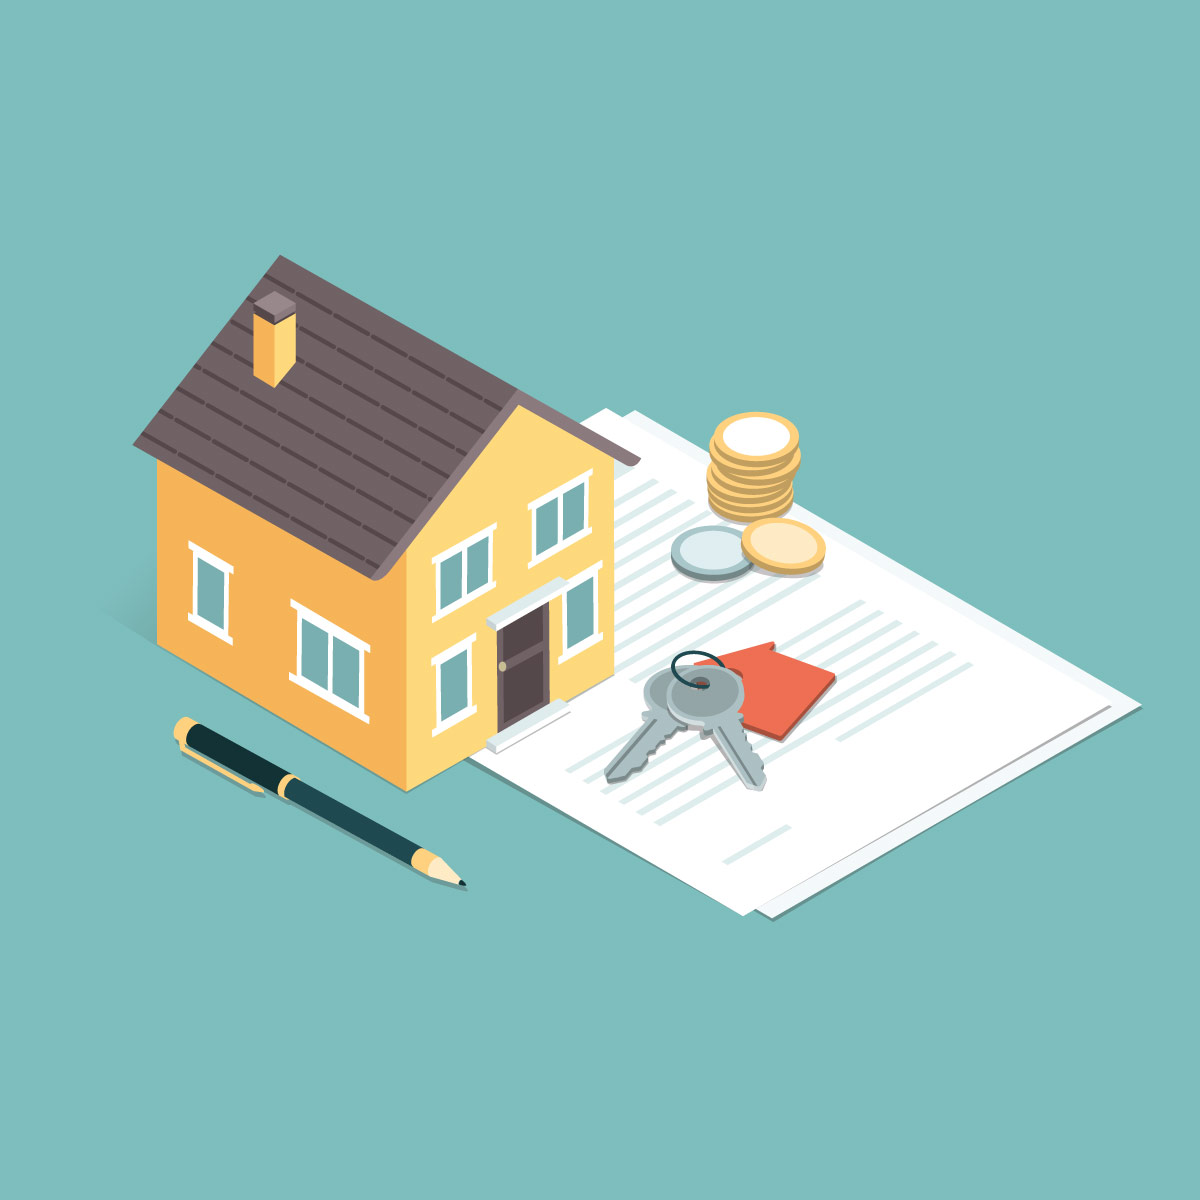 illustration of buying a house